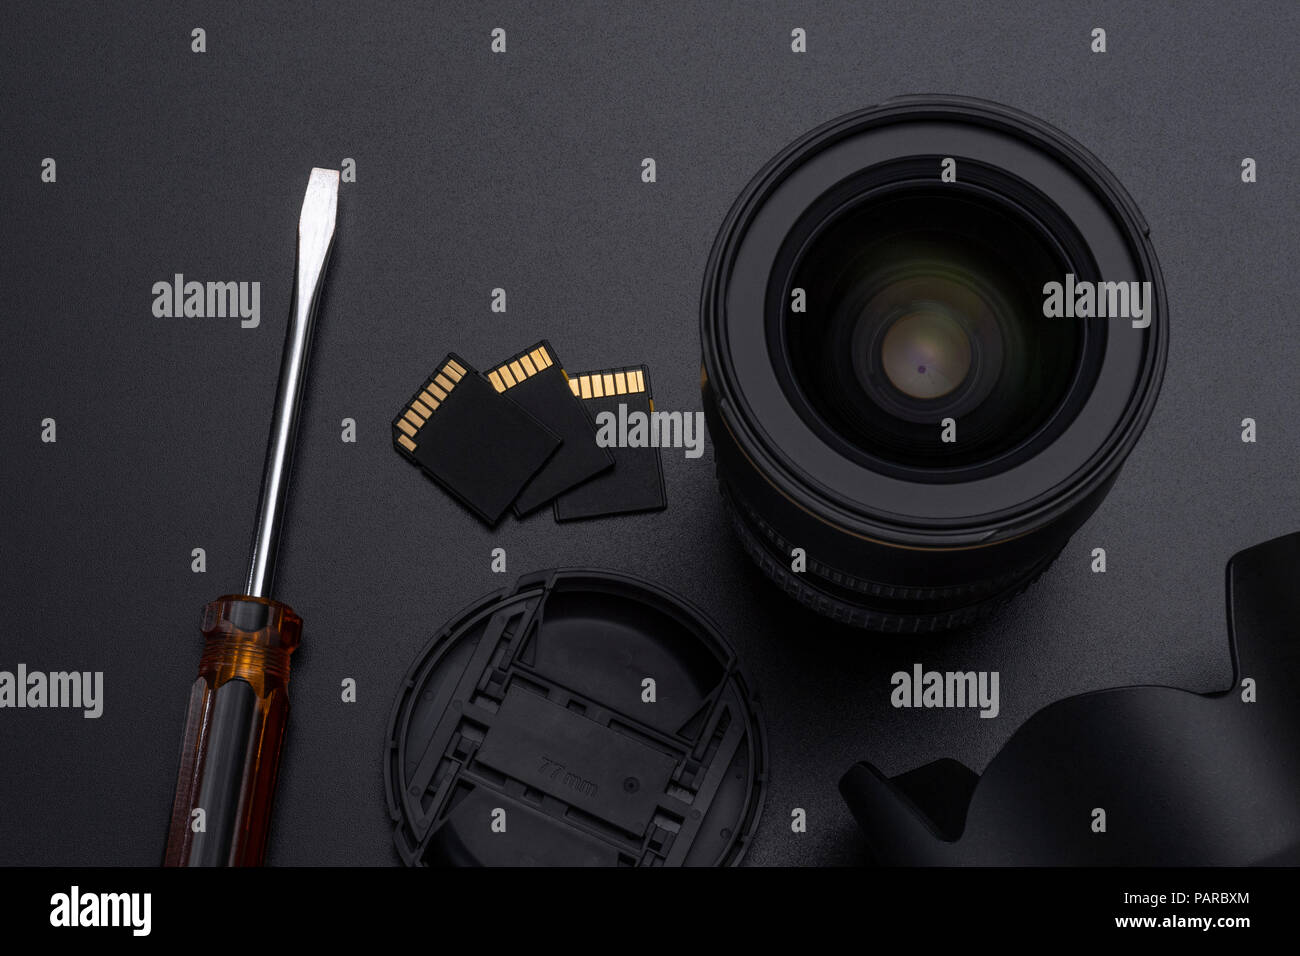 Photo DSLR camera or video lens, SD memory cards, hood, screwdriver and front cap close-up image on black background - Stock Image